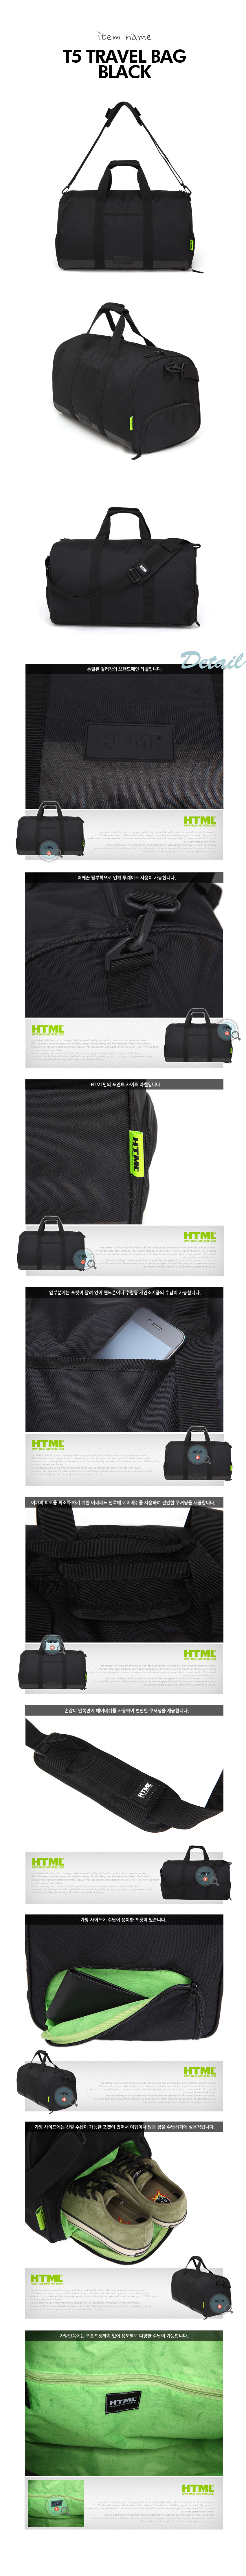 HTML - T5 Travel bag (Black)